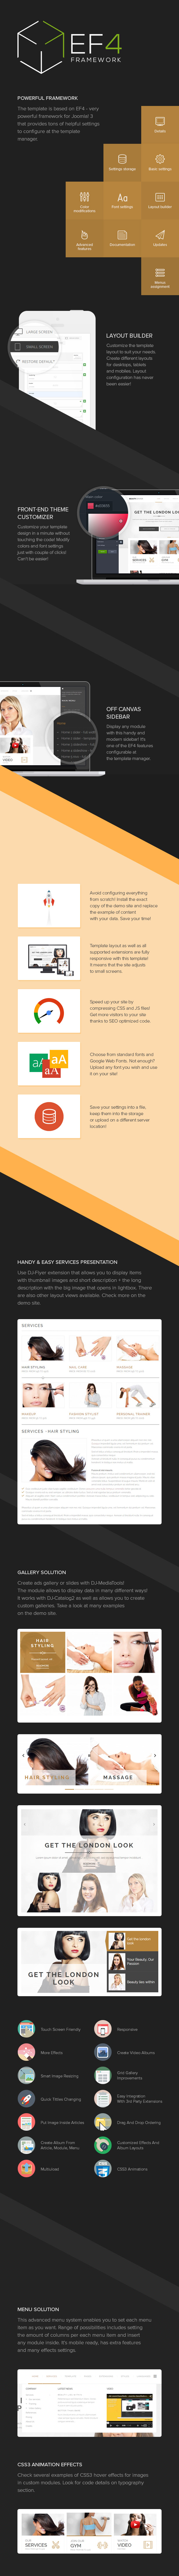 Joomla beauty services template by Joomla-Monster